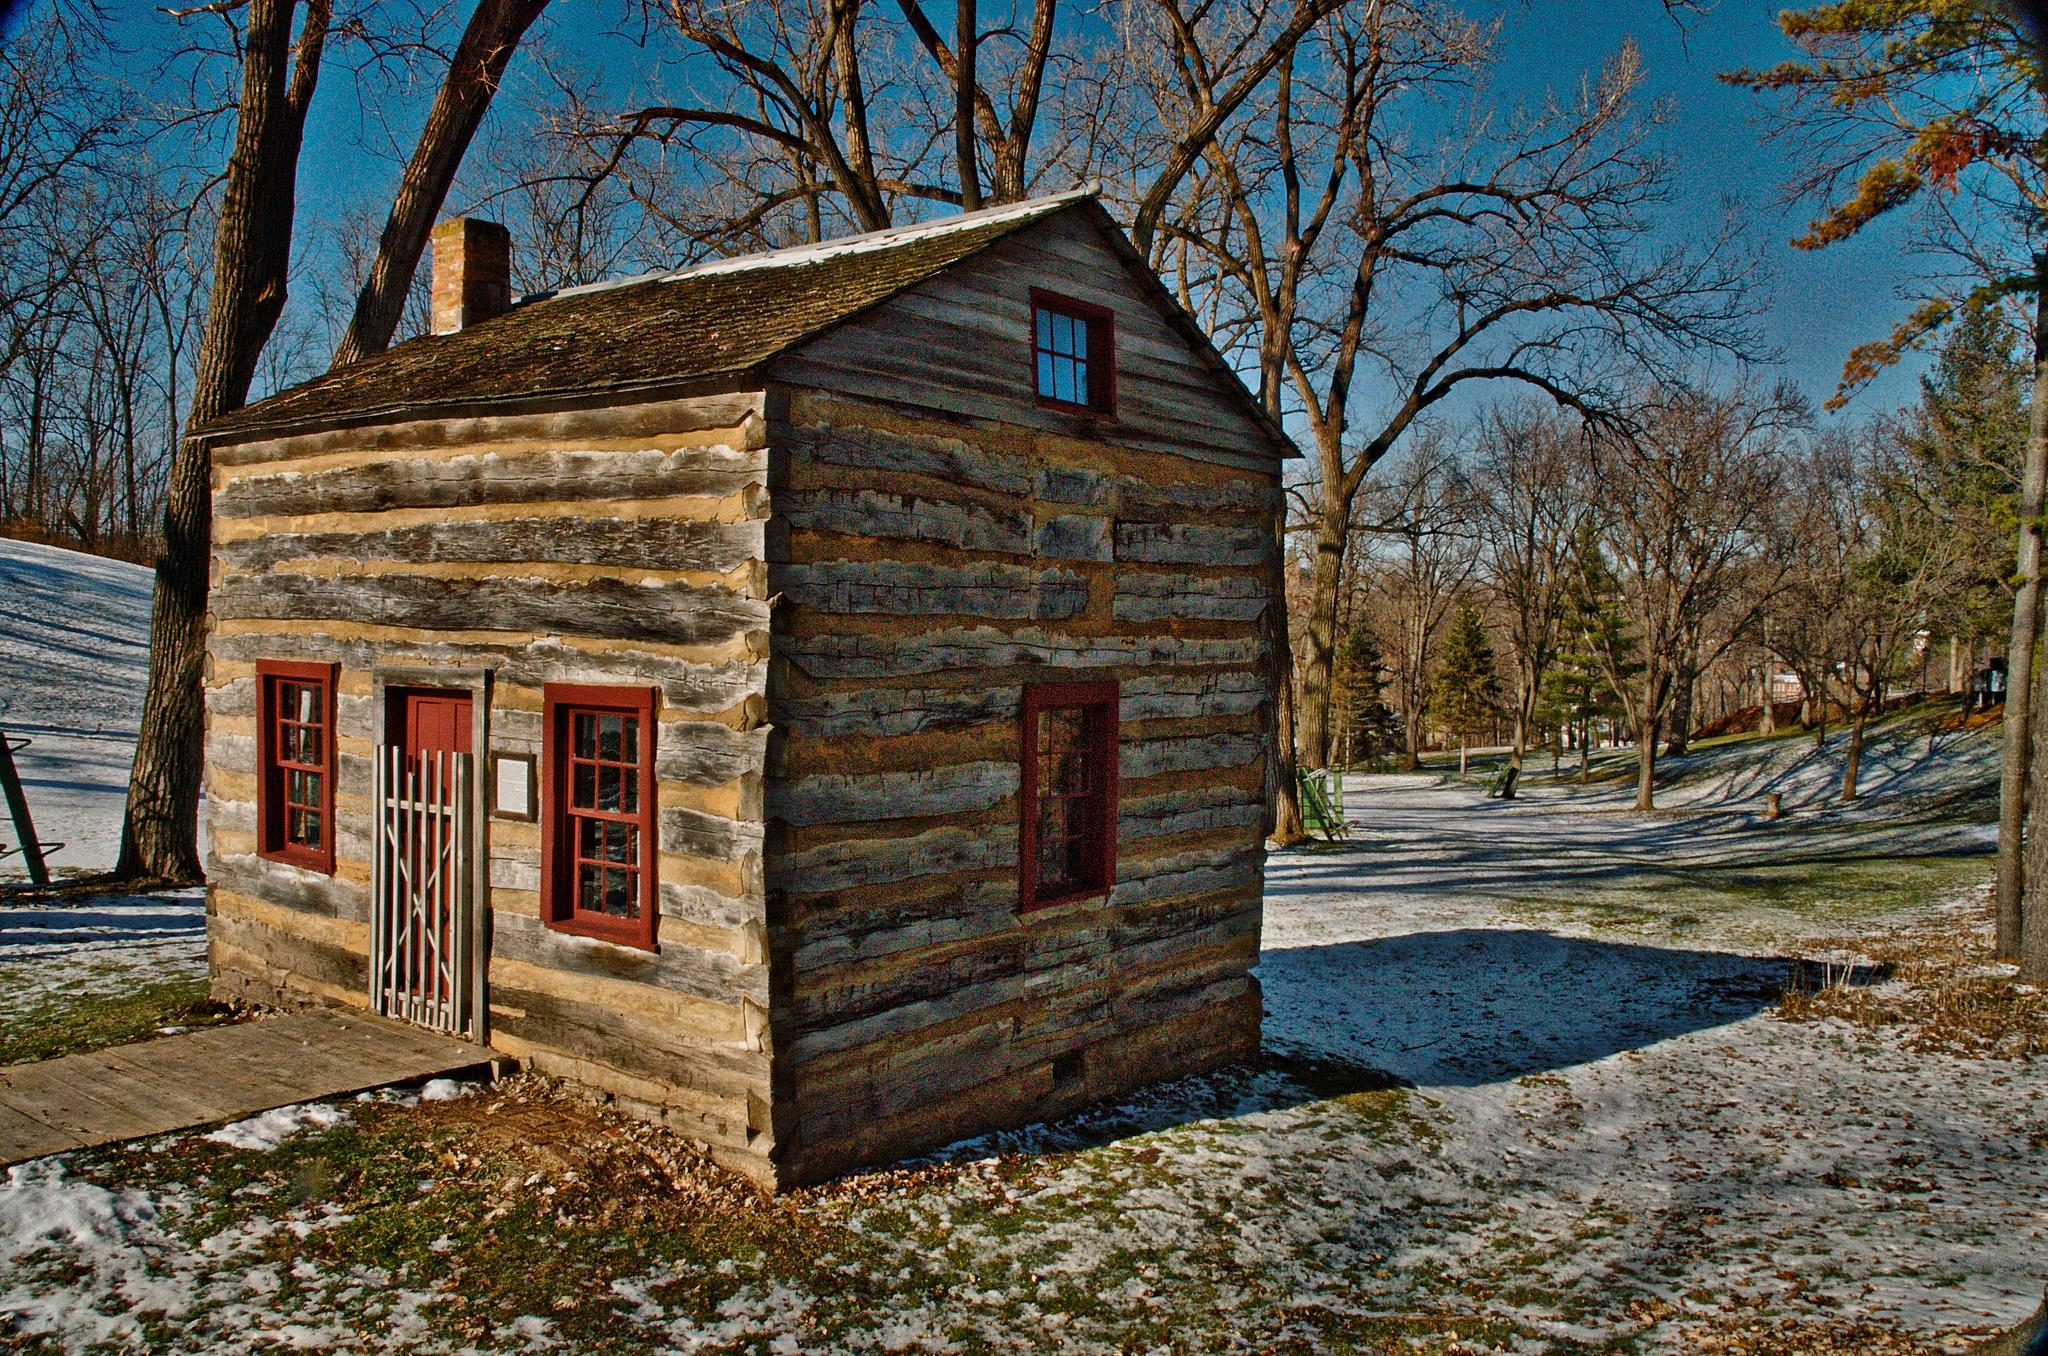 The Wooden Cabin by gamma19426